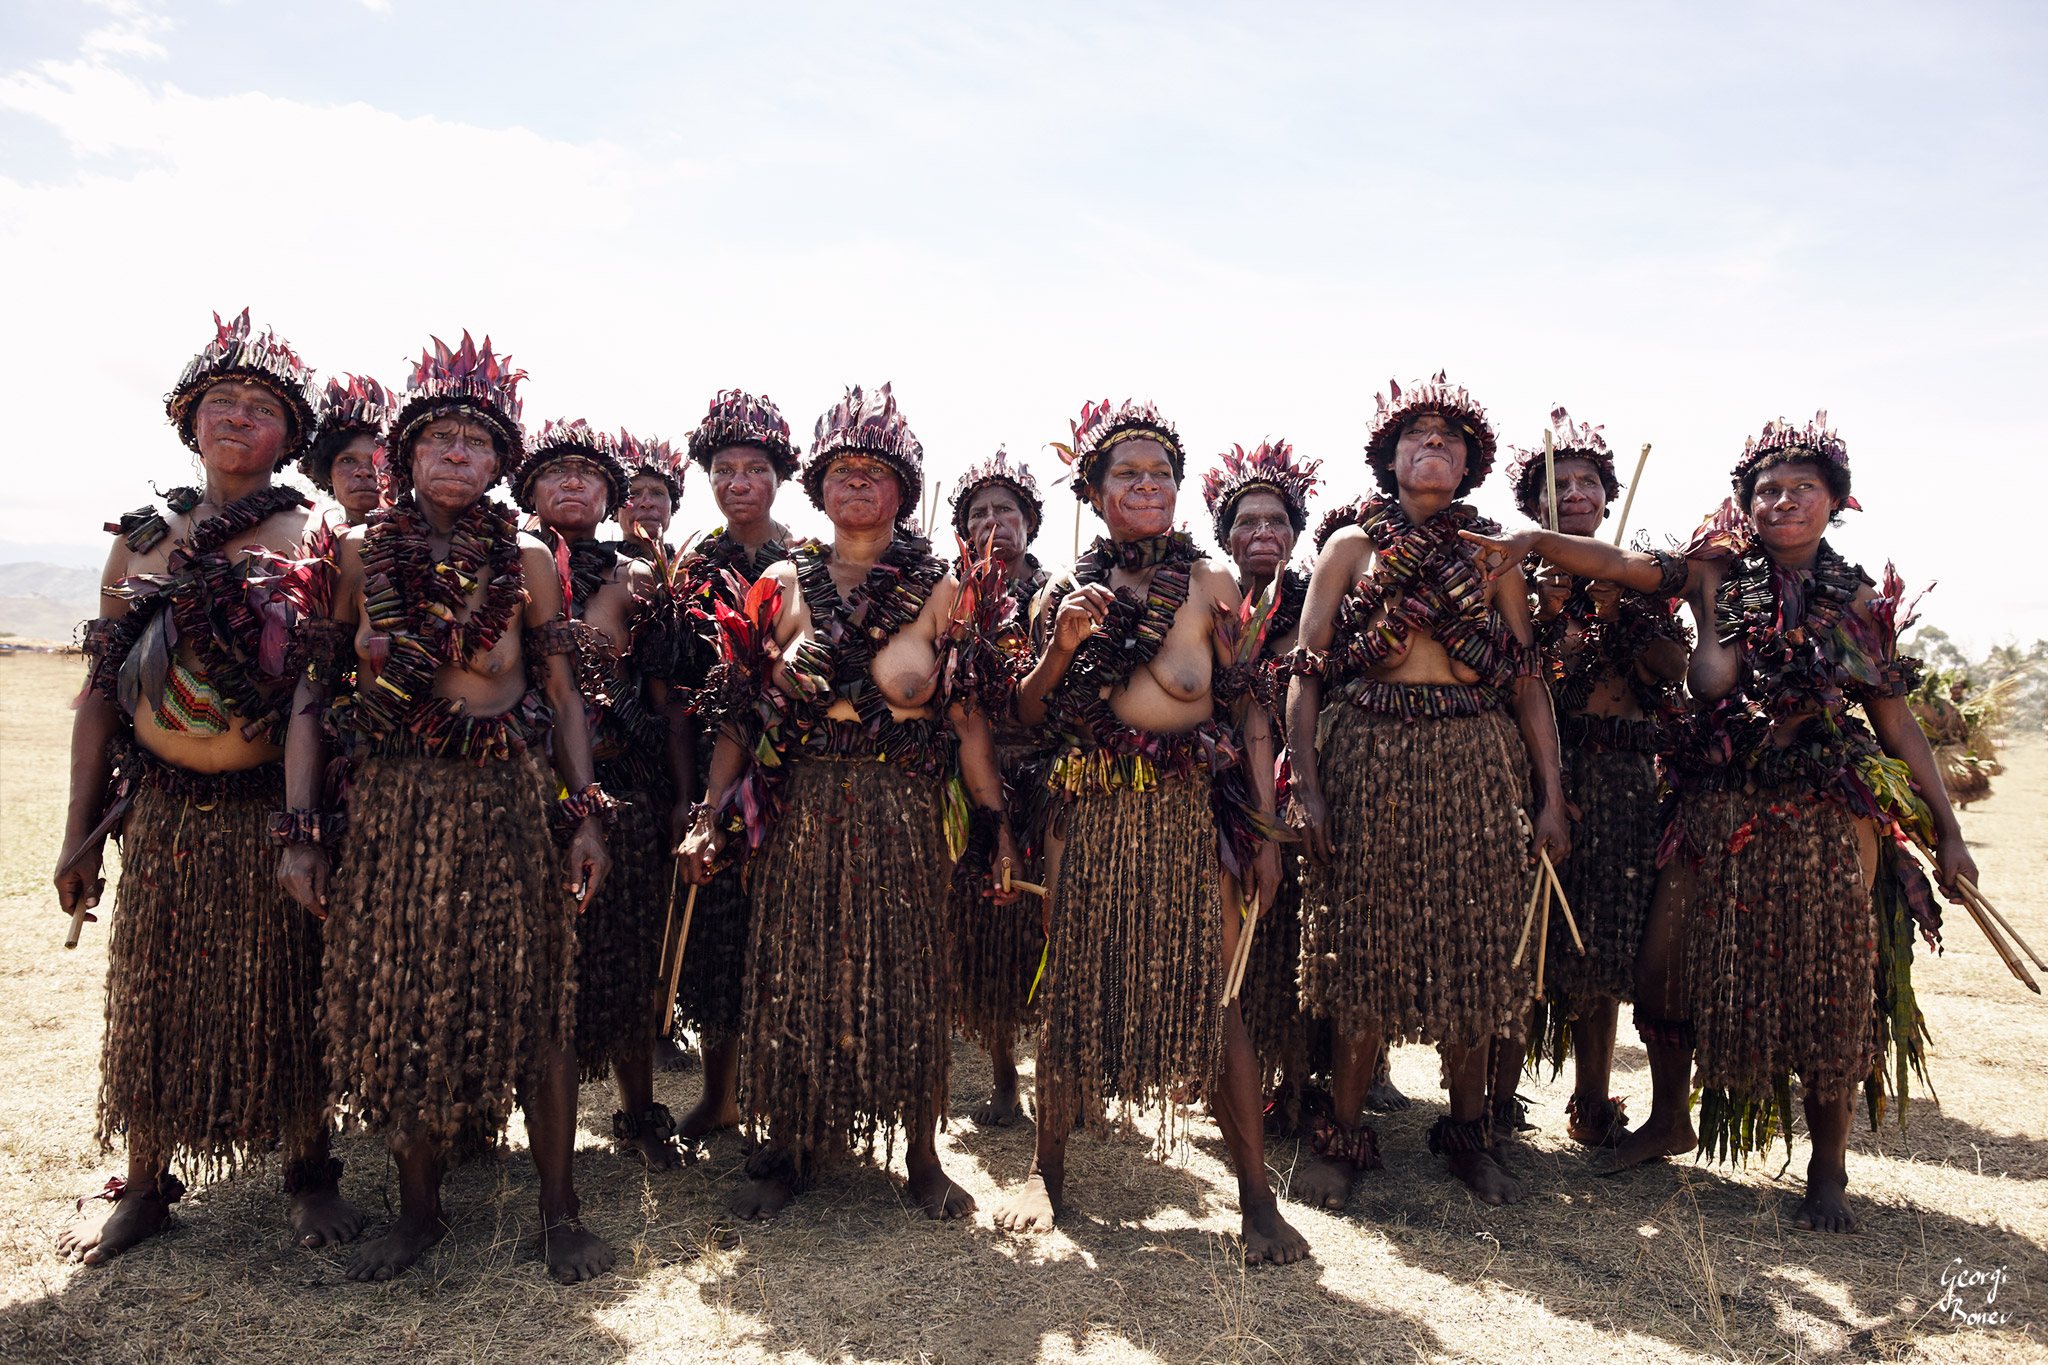 ELIMBARI WOMEN IN PAPUA NEW GUINEA